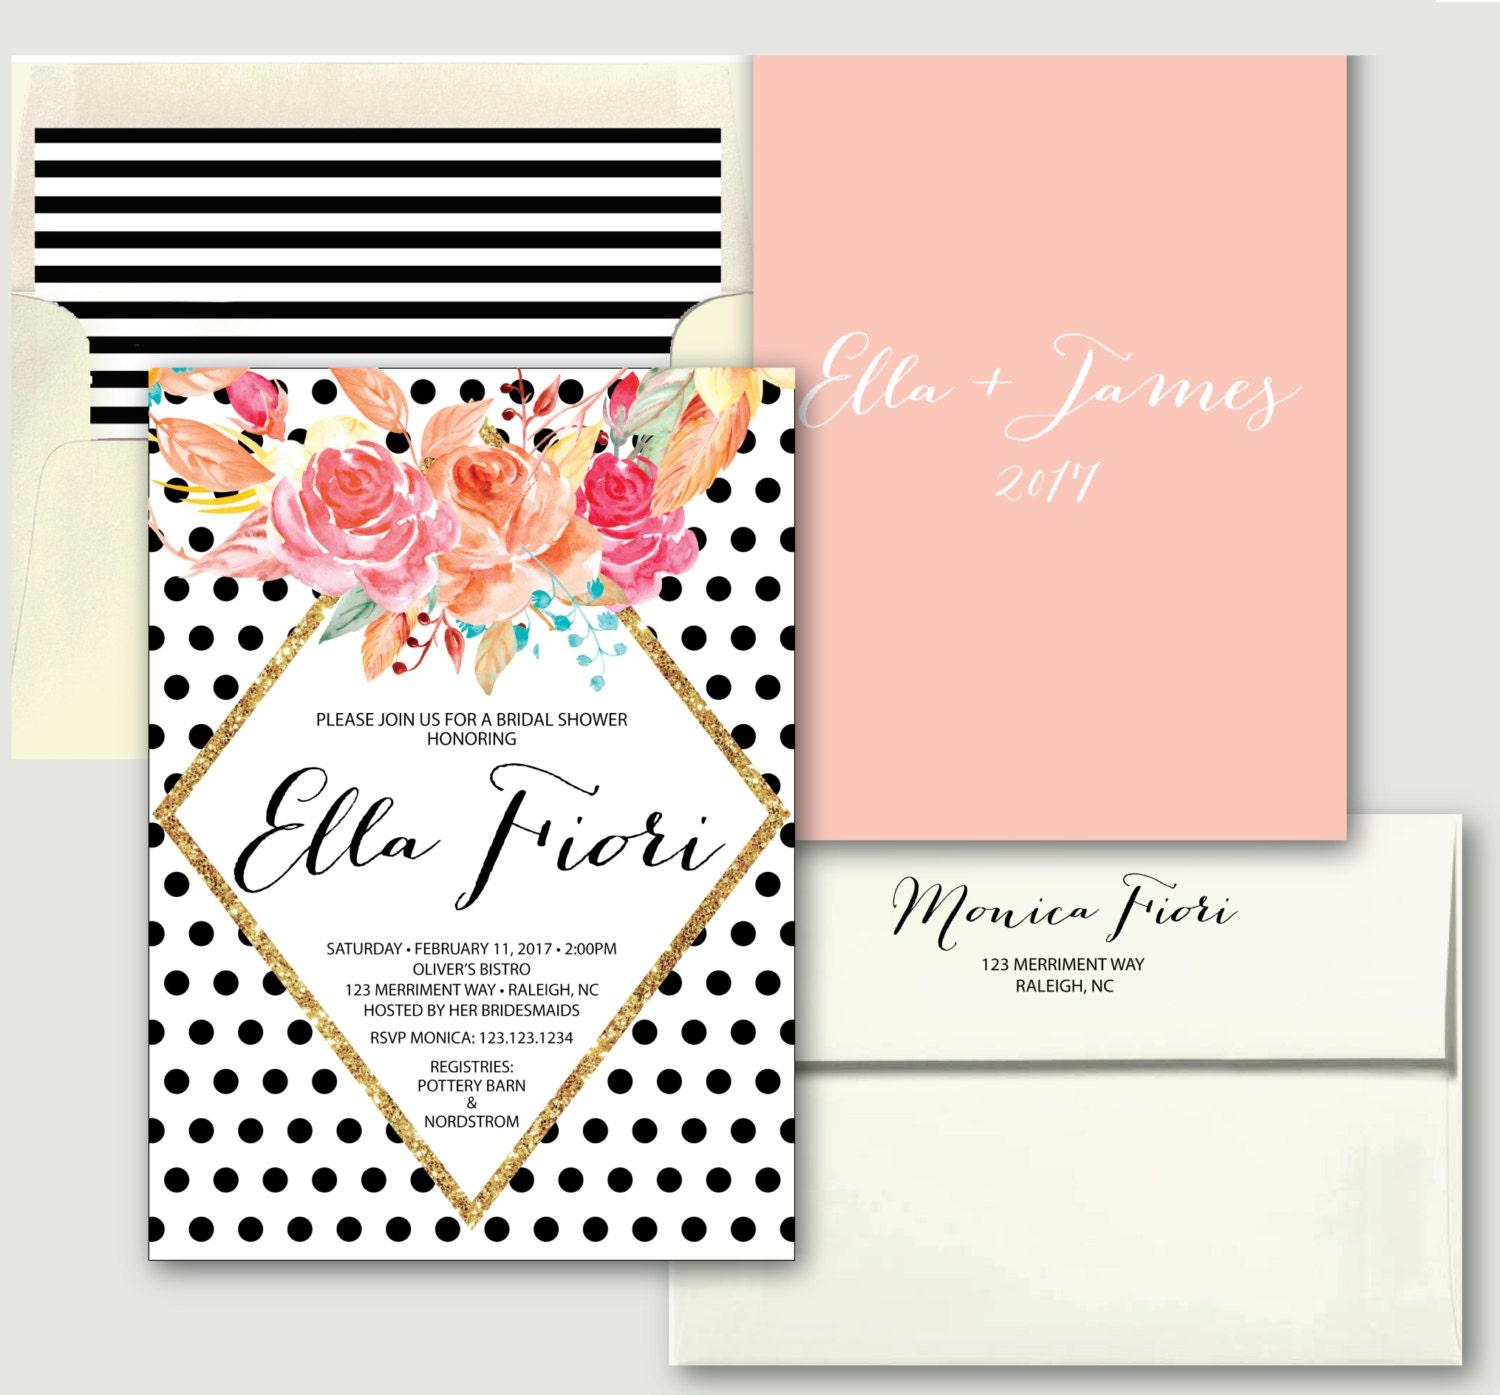 Black polka dot bridal shower invitation bridal shower invitation black polka dot bridal shower invitation bridal shower invitation black and white blush pink gold glitter raleigh collection filmwisefo